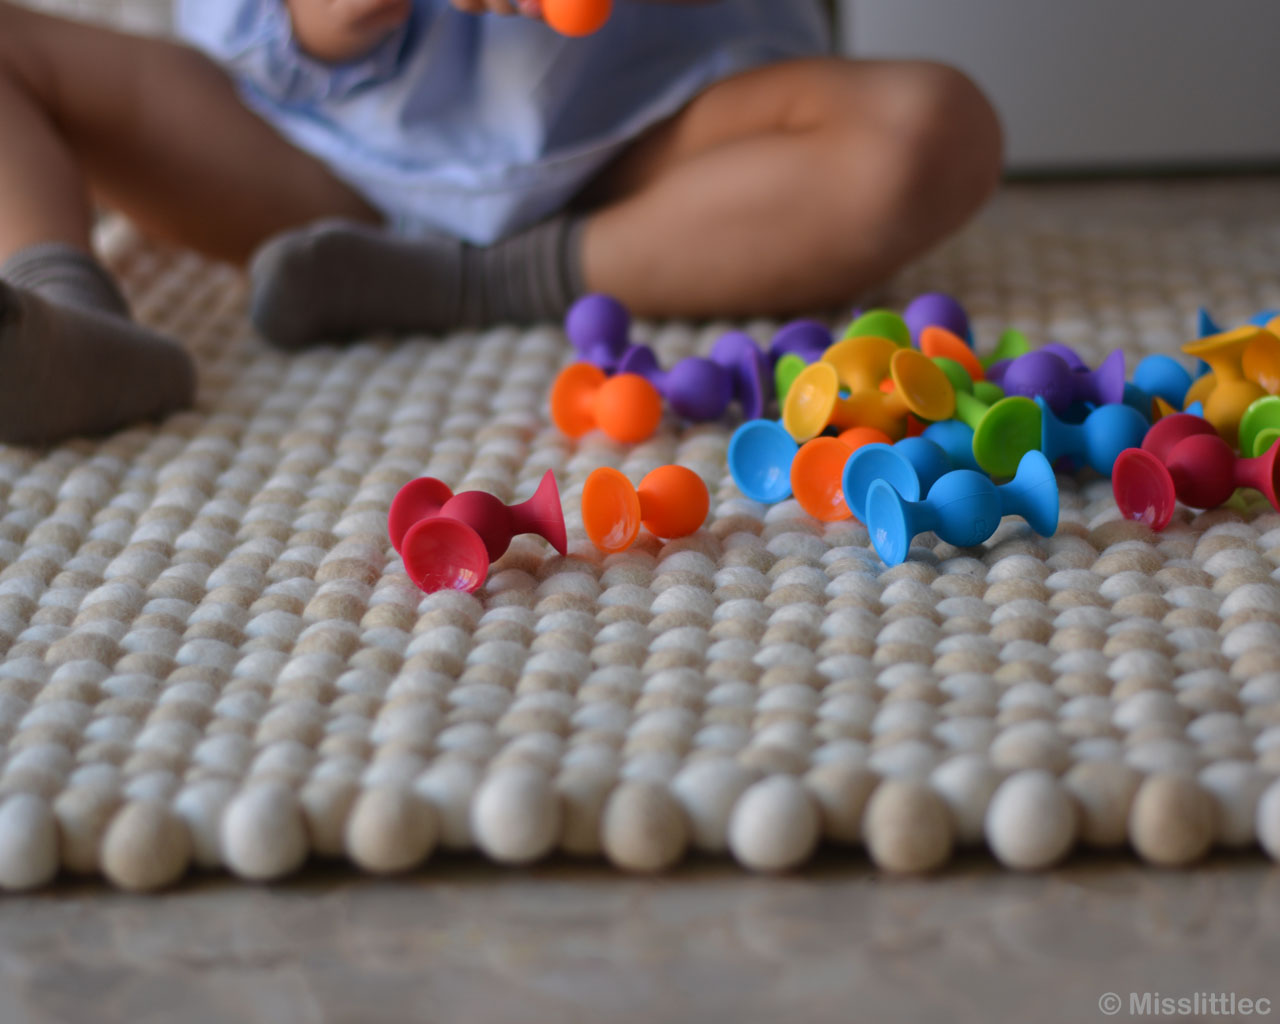 toys made of plastic nepal fresh bedroom rugs